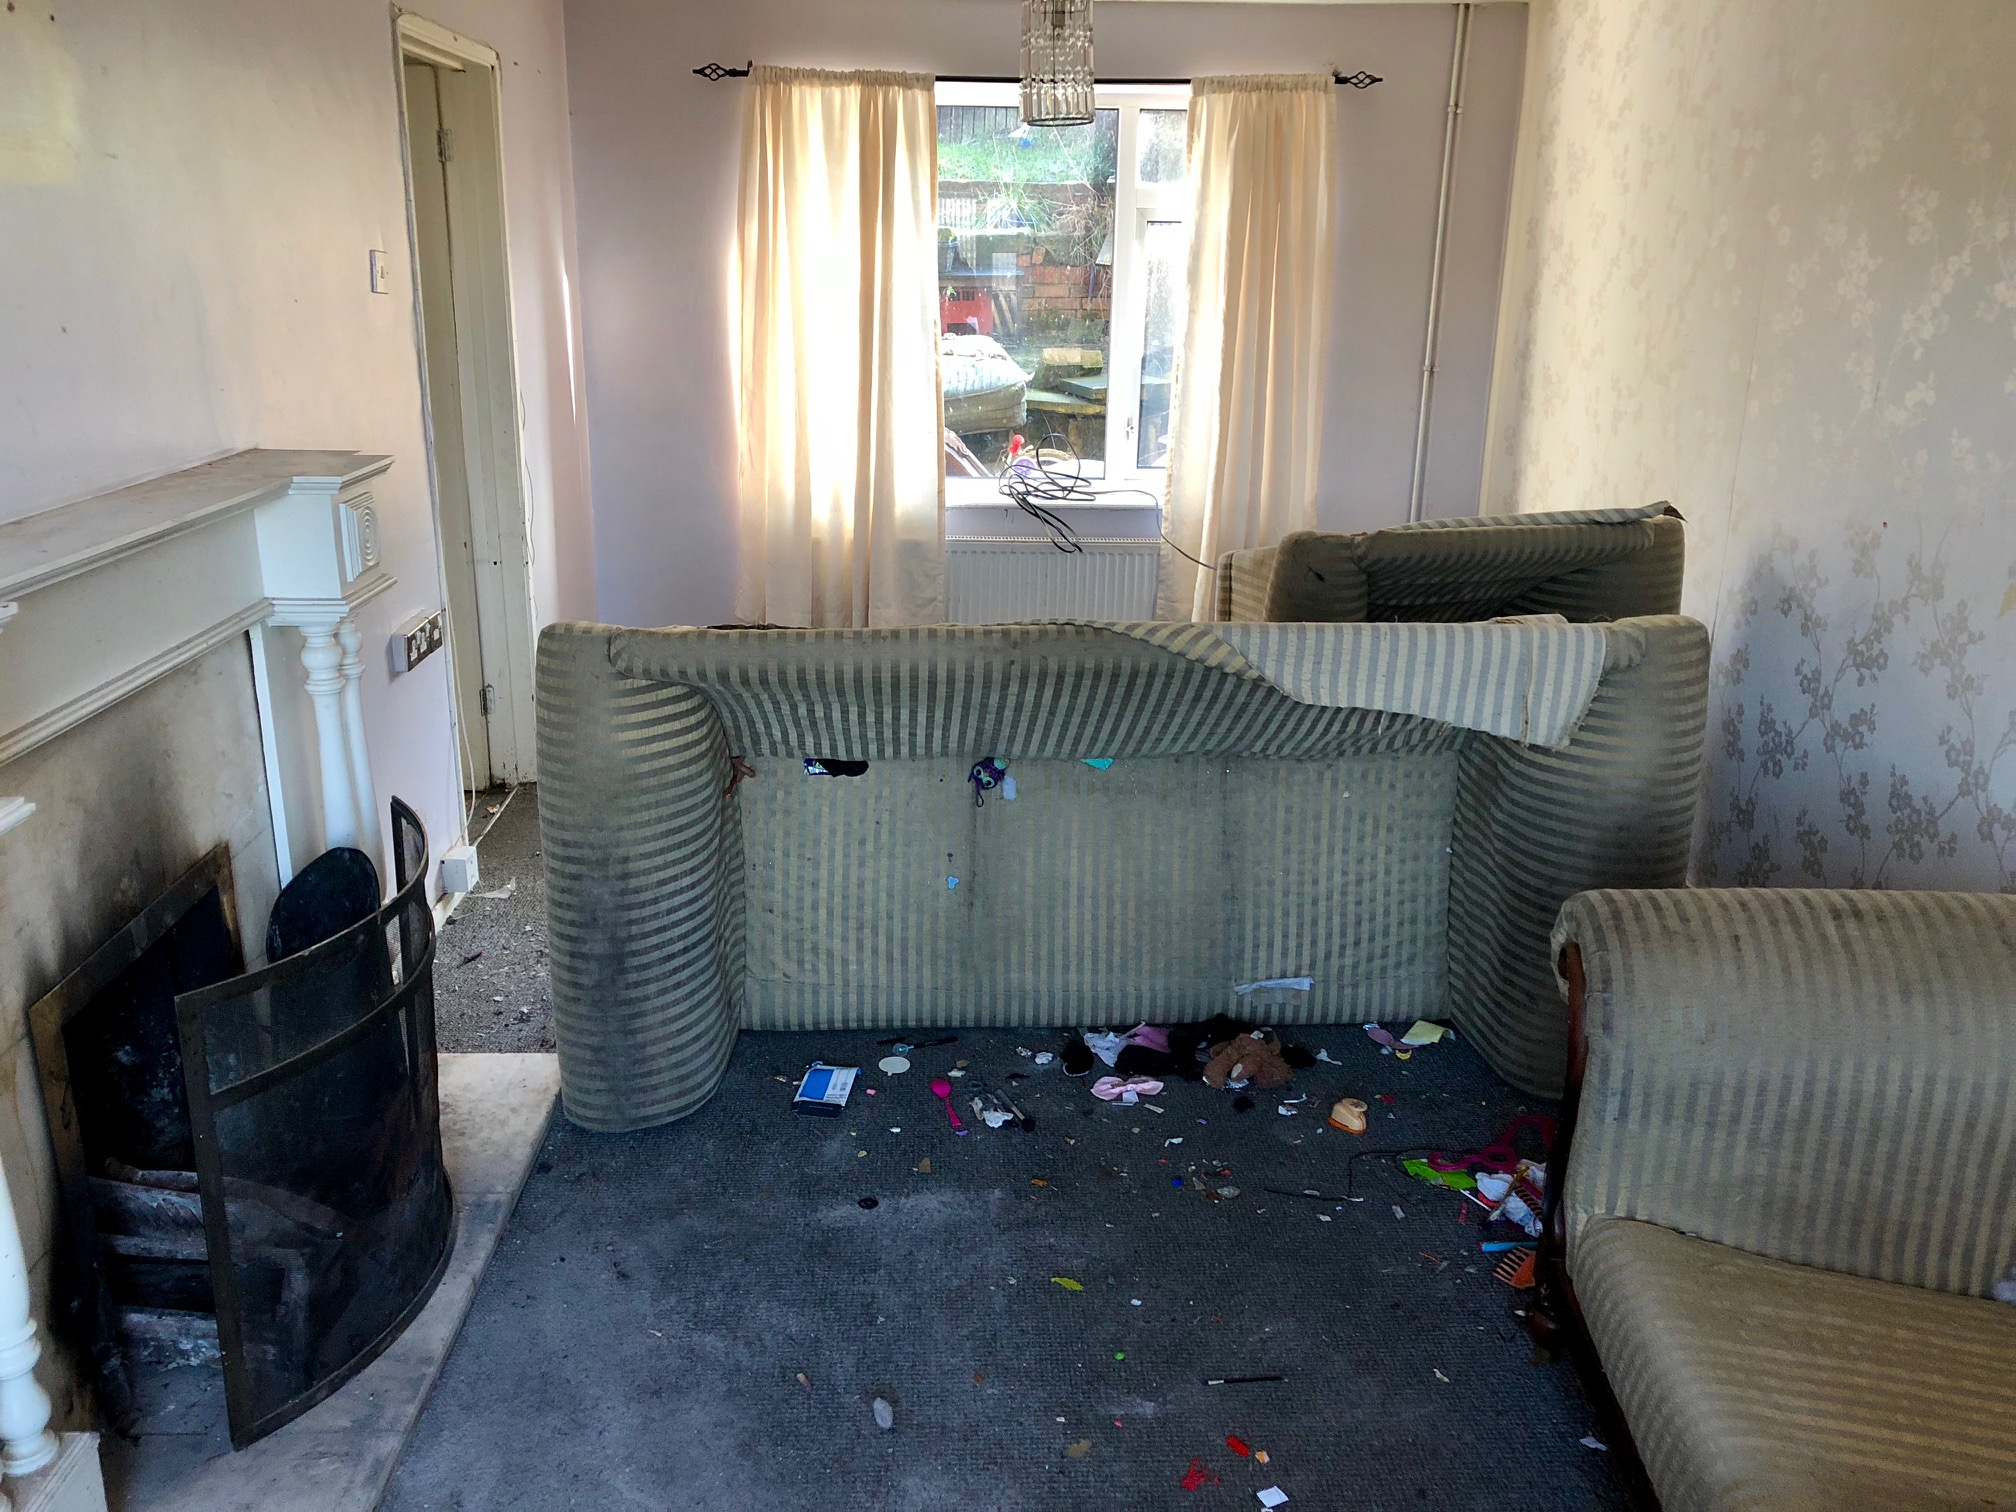 S44 Bus Time >> Terraced House in Chesterfield | 19 Springfield Crescent ...